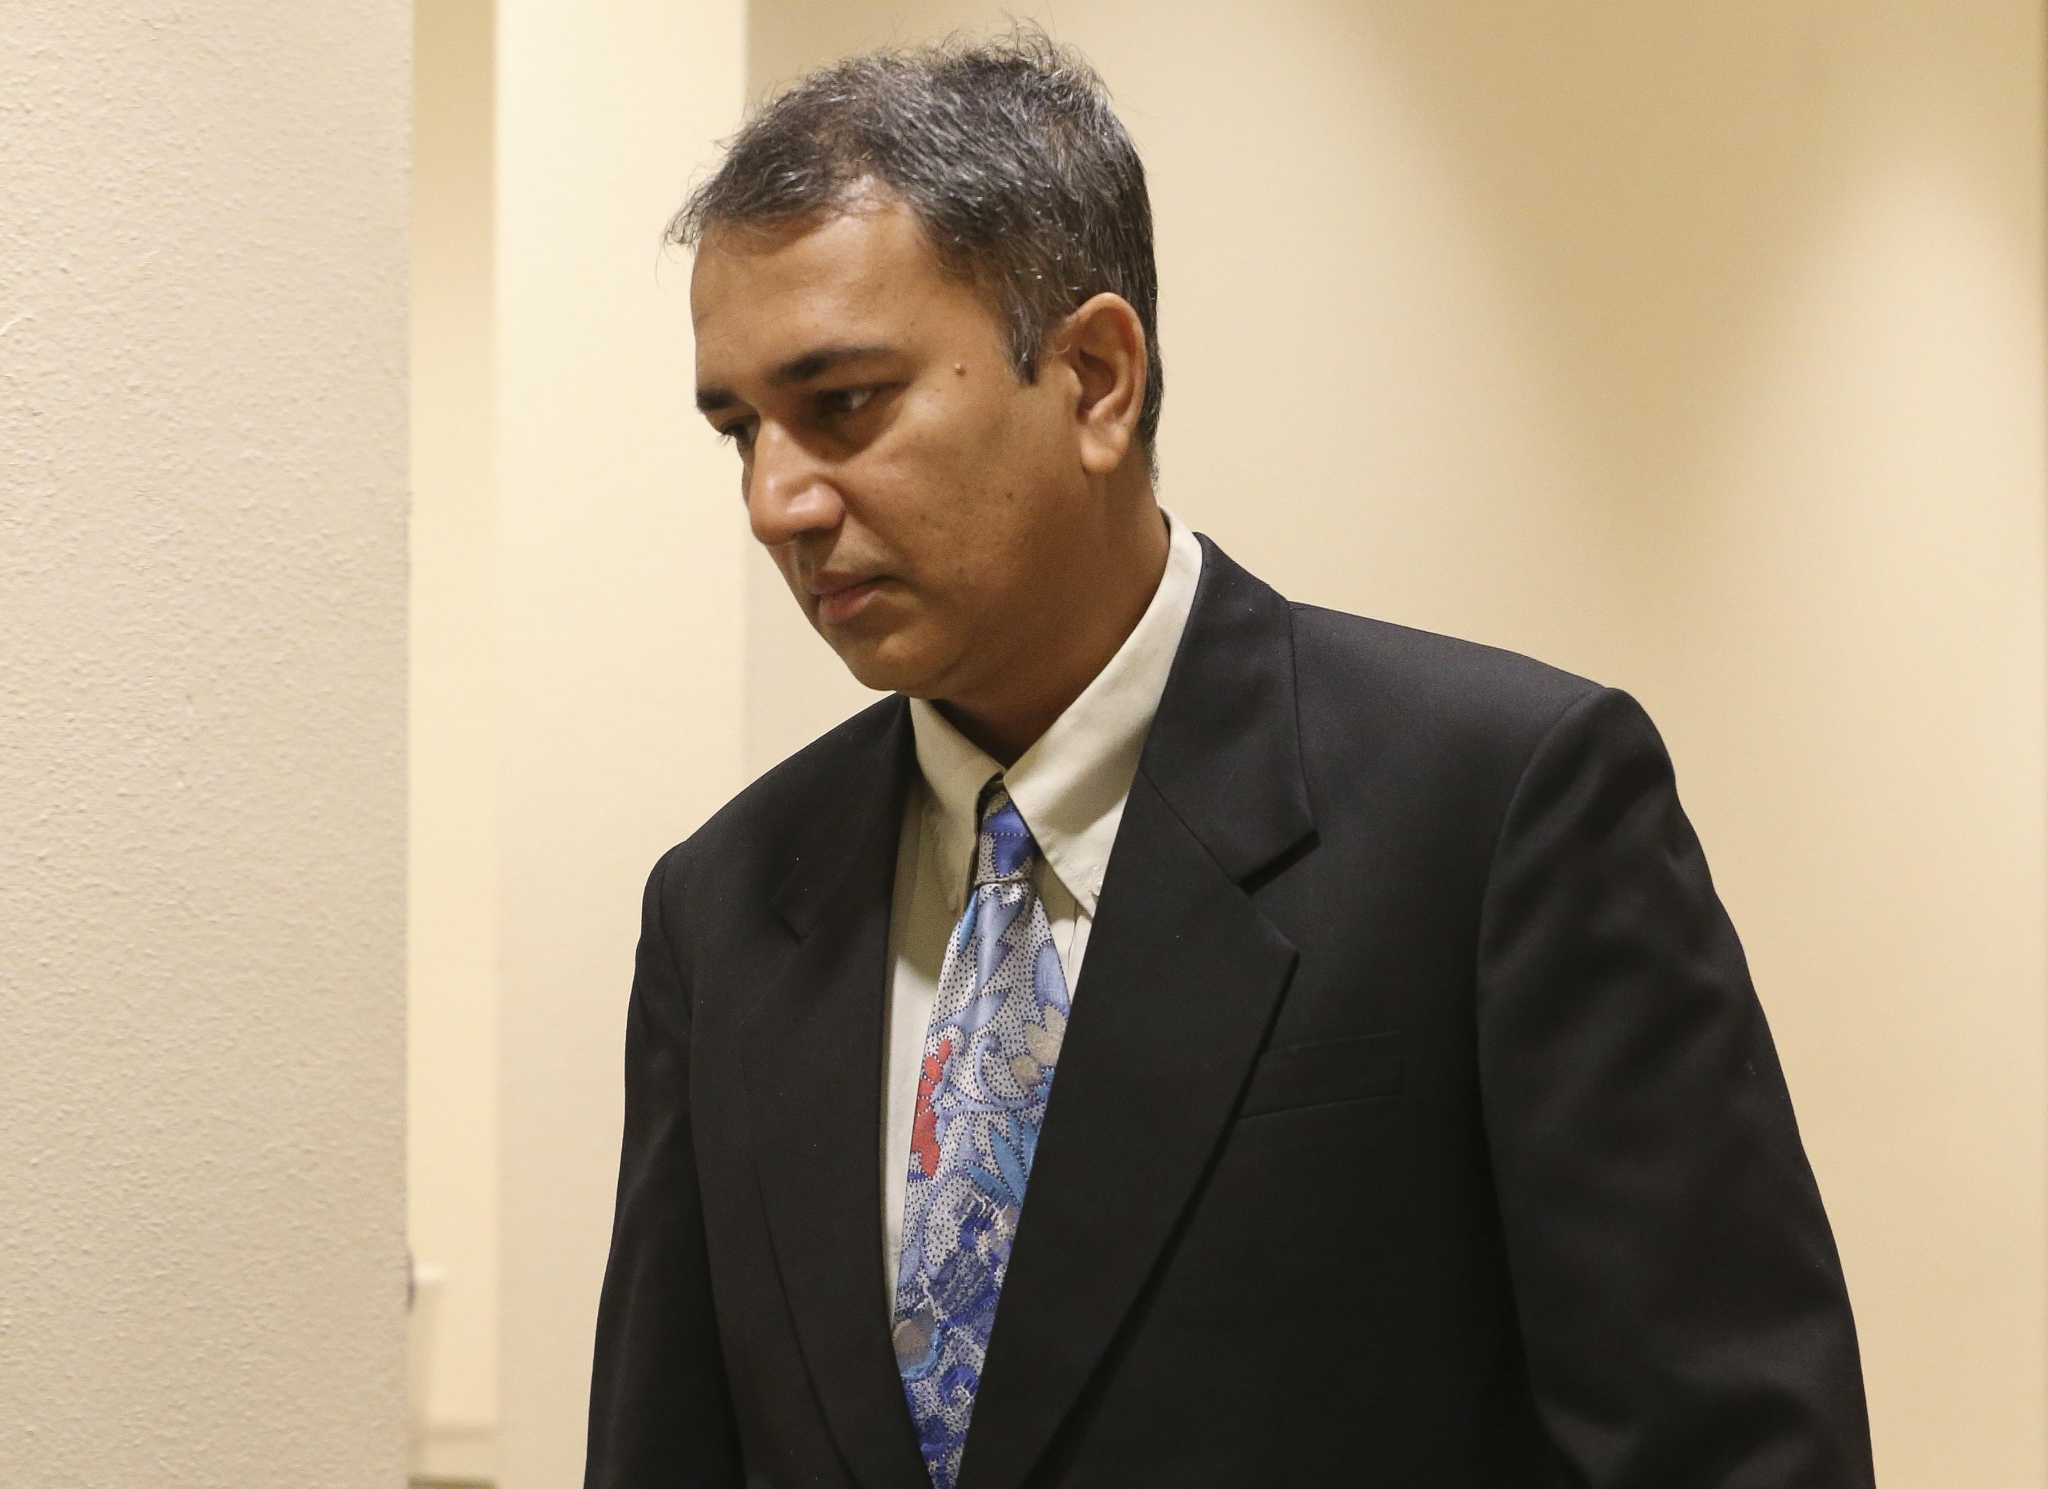 Many Surprised At Sentence For Ex-Baylor Doctor Who Raped A Houston  Hospital Patient - Houston Chronicle